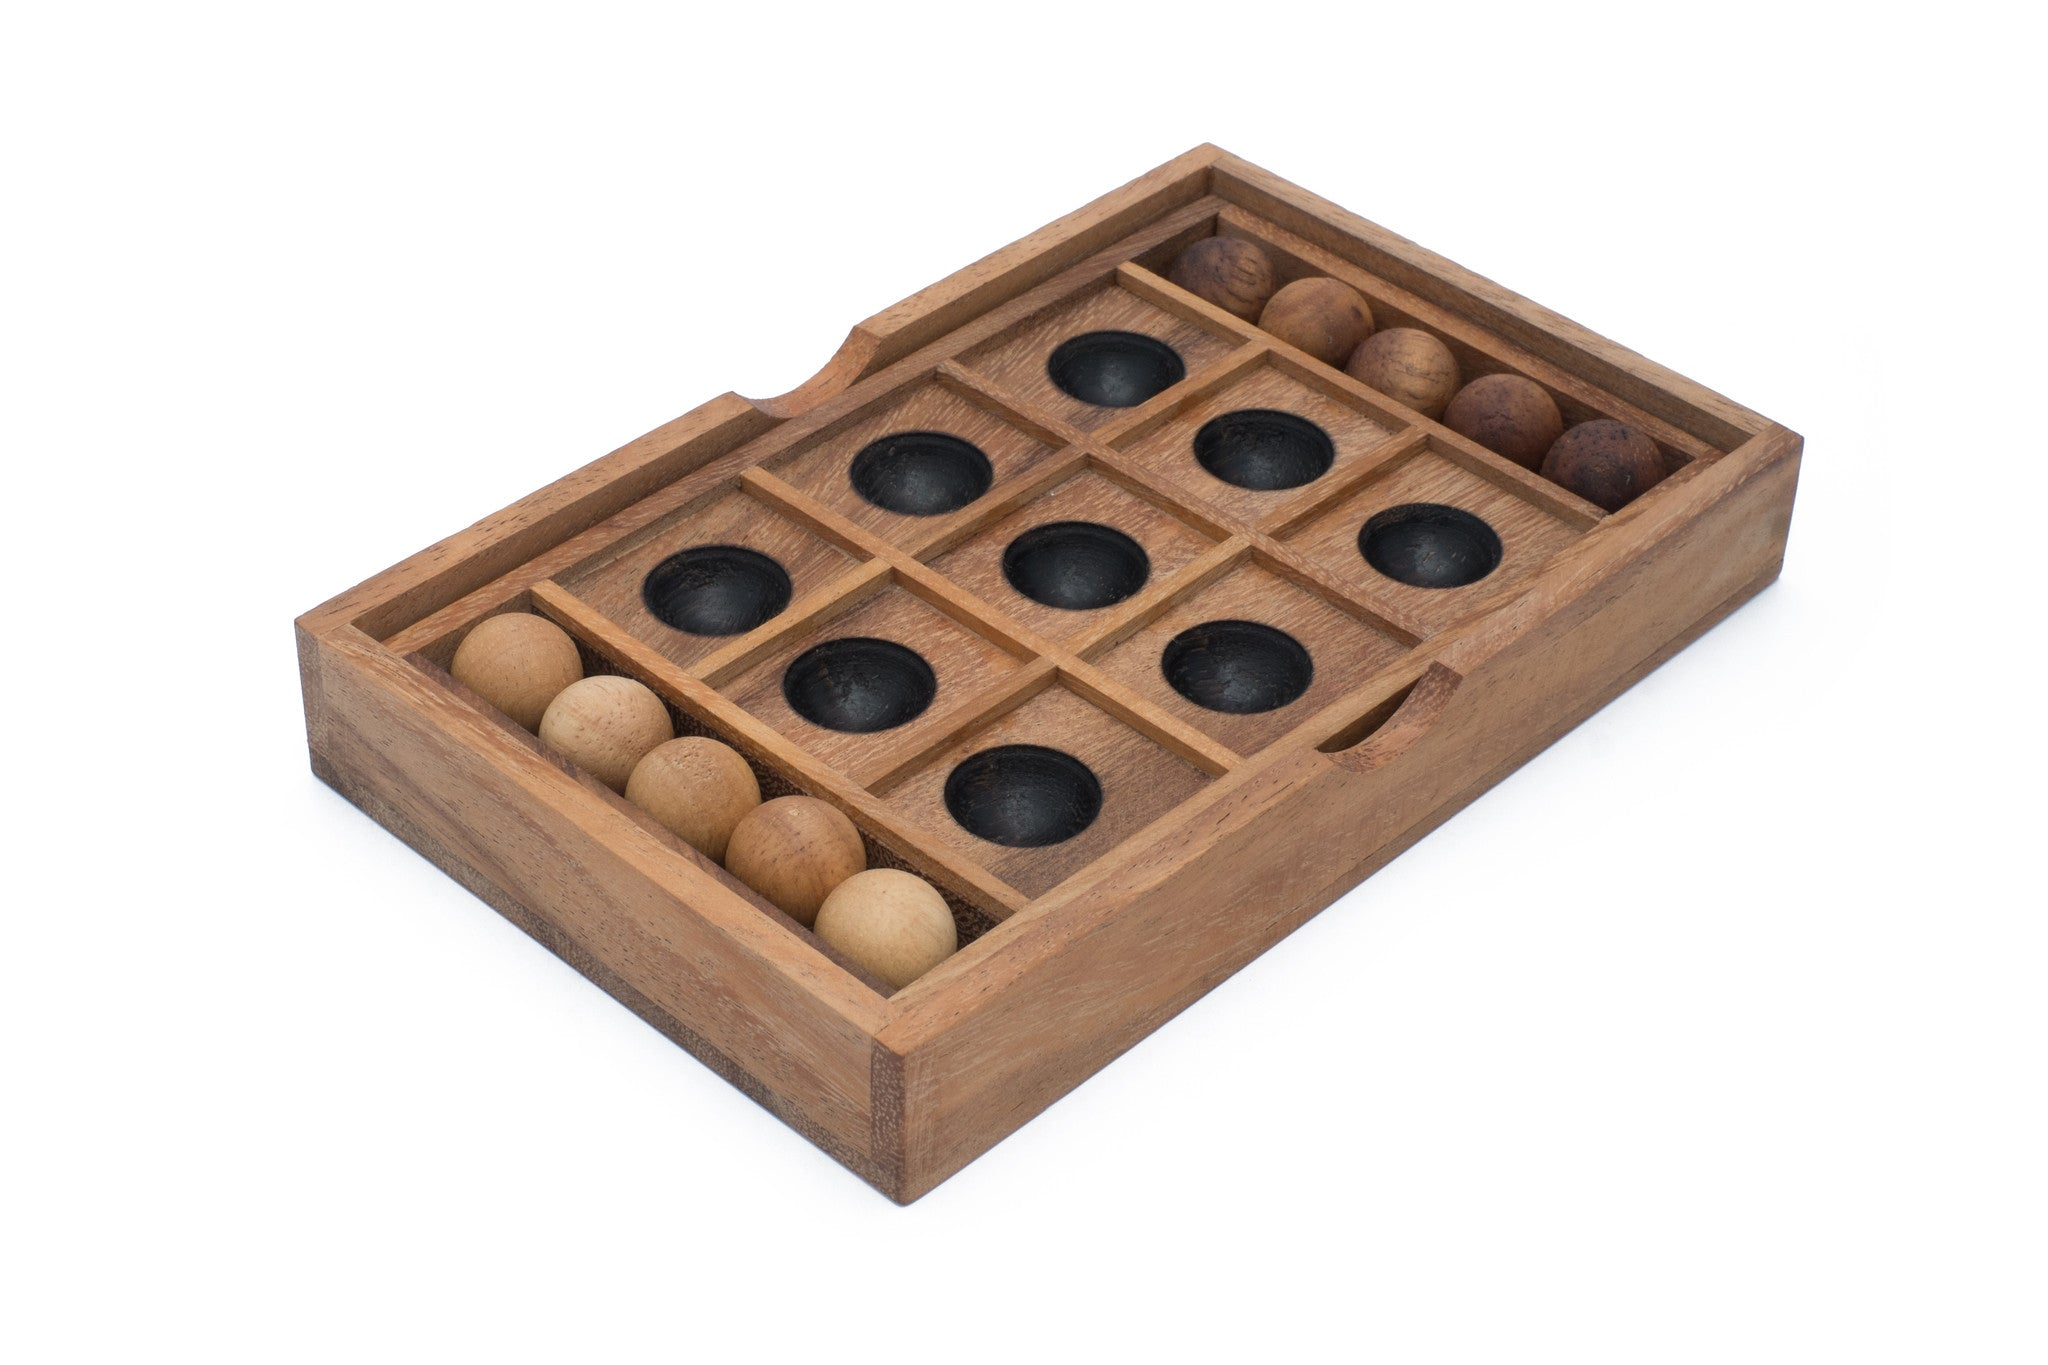 Wooden Tic Tac Toe Set Noughts And Crosses Wooden Game Board